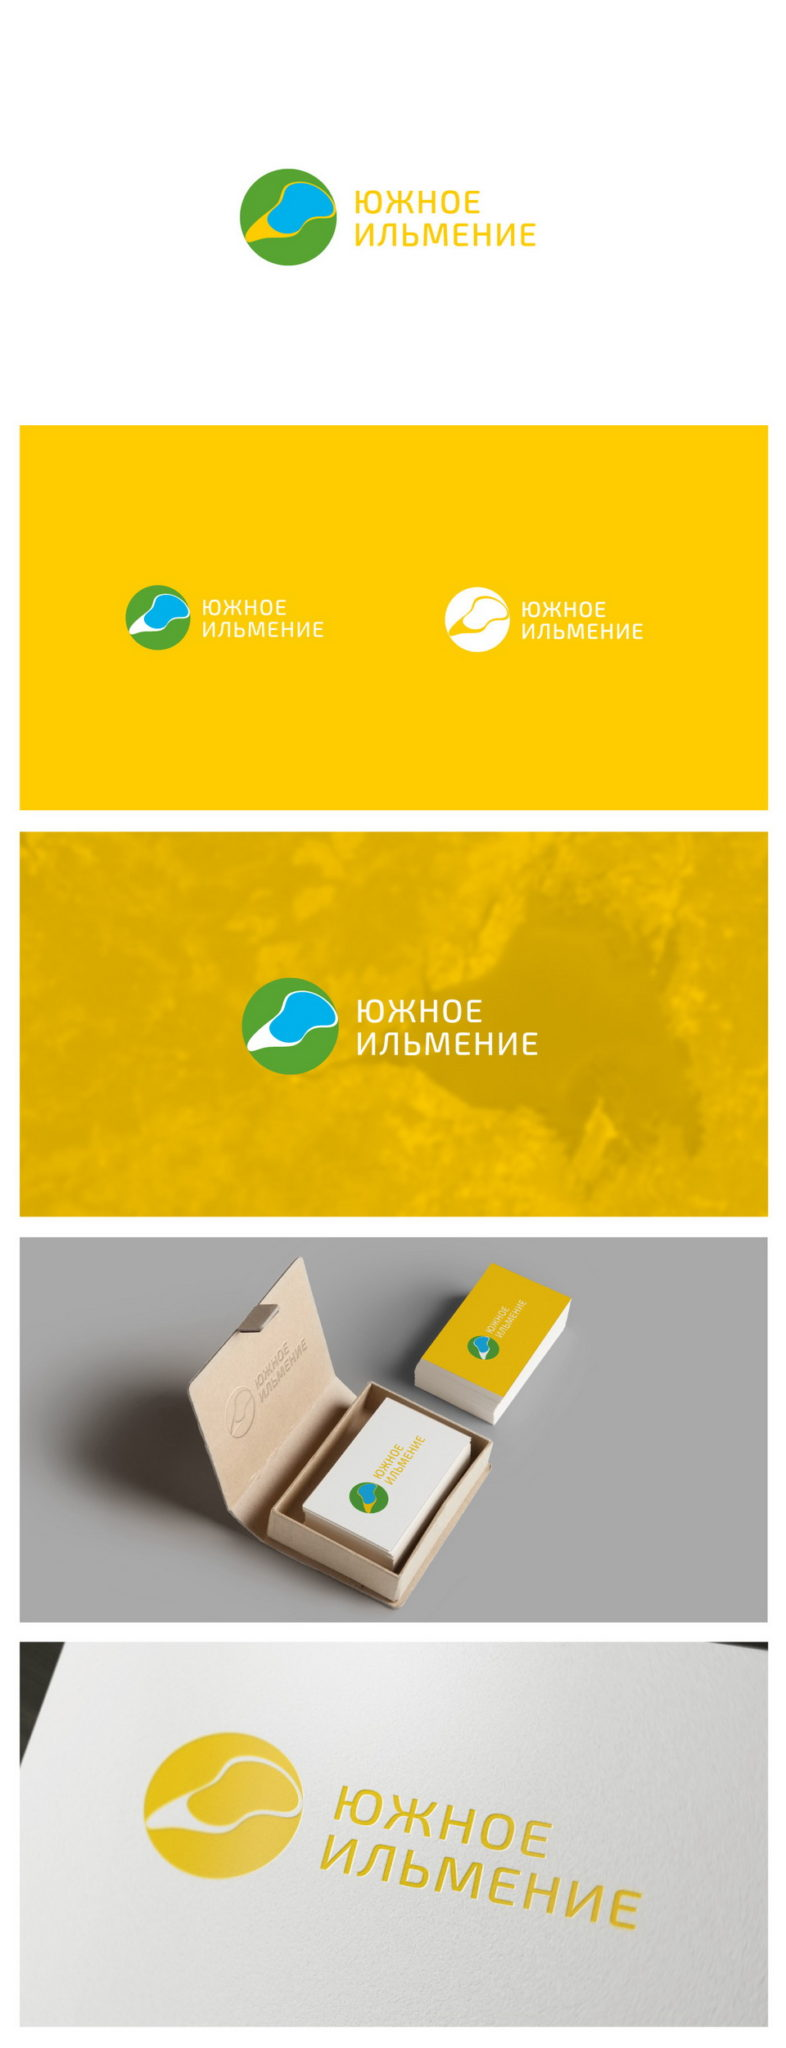 logo, form style, business documentation, Guide on the use of the logo, South ilmenite